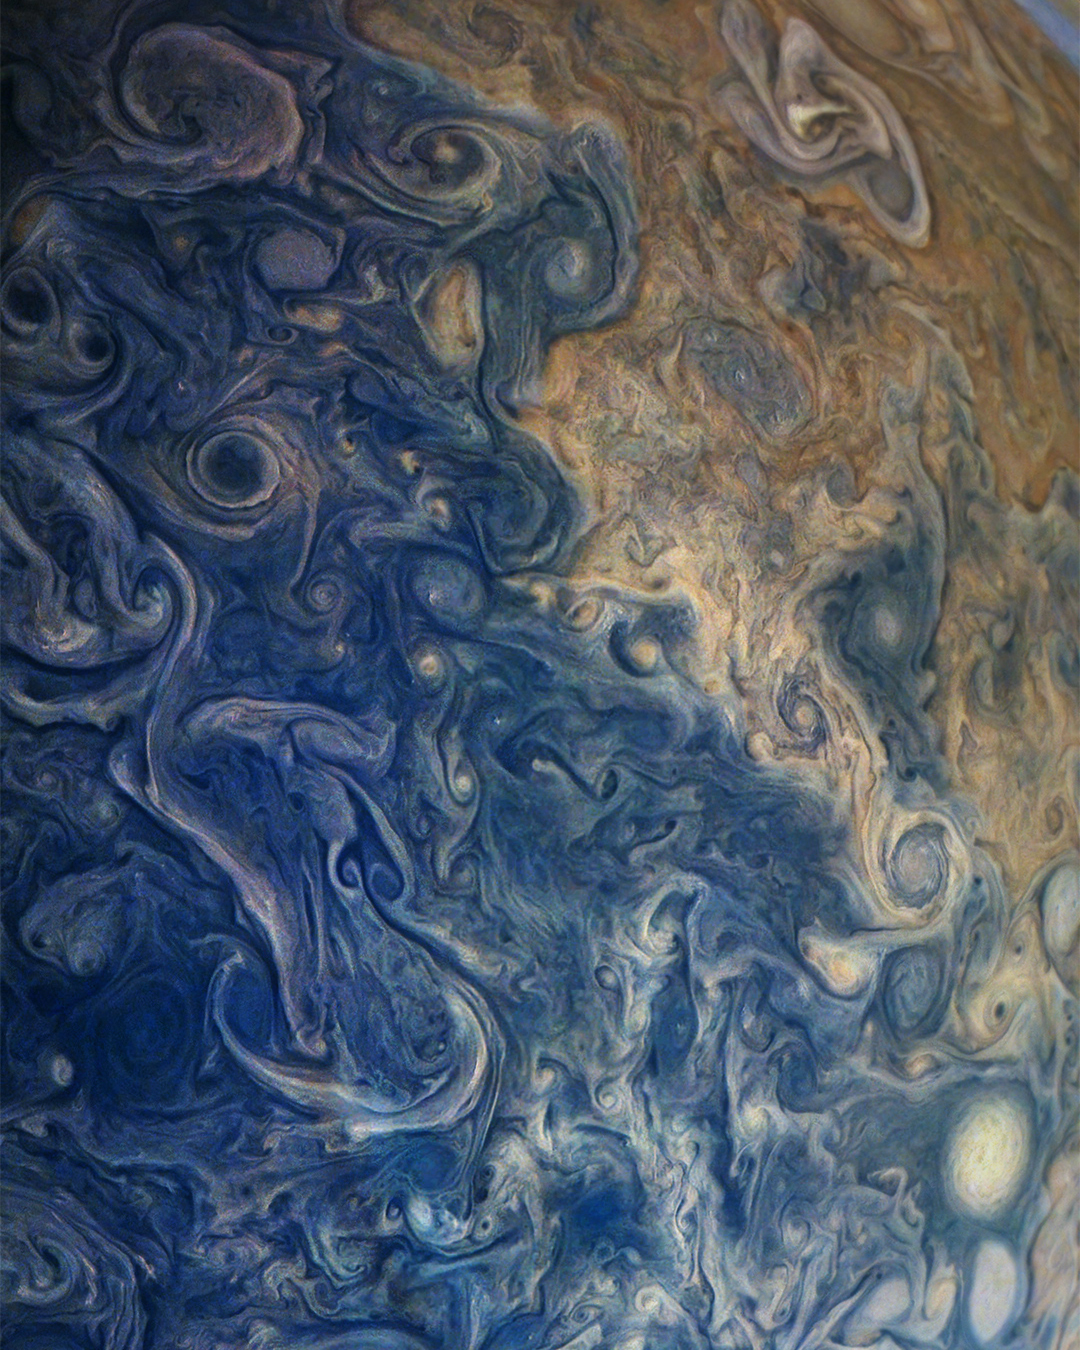 Check out this beautiful shot of Jupiter. Taken by the spacecraft Juno, the image captures swirling storms on the planet as wide as two Earths. Juno has been circling Jupiter since July 2016 and will continue to do so, traveling at speeds up to 130,000 mph, for a total of two years.  Image courtesy of NASA